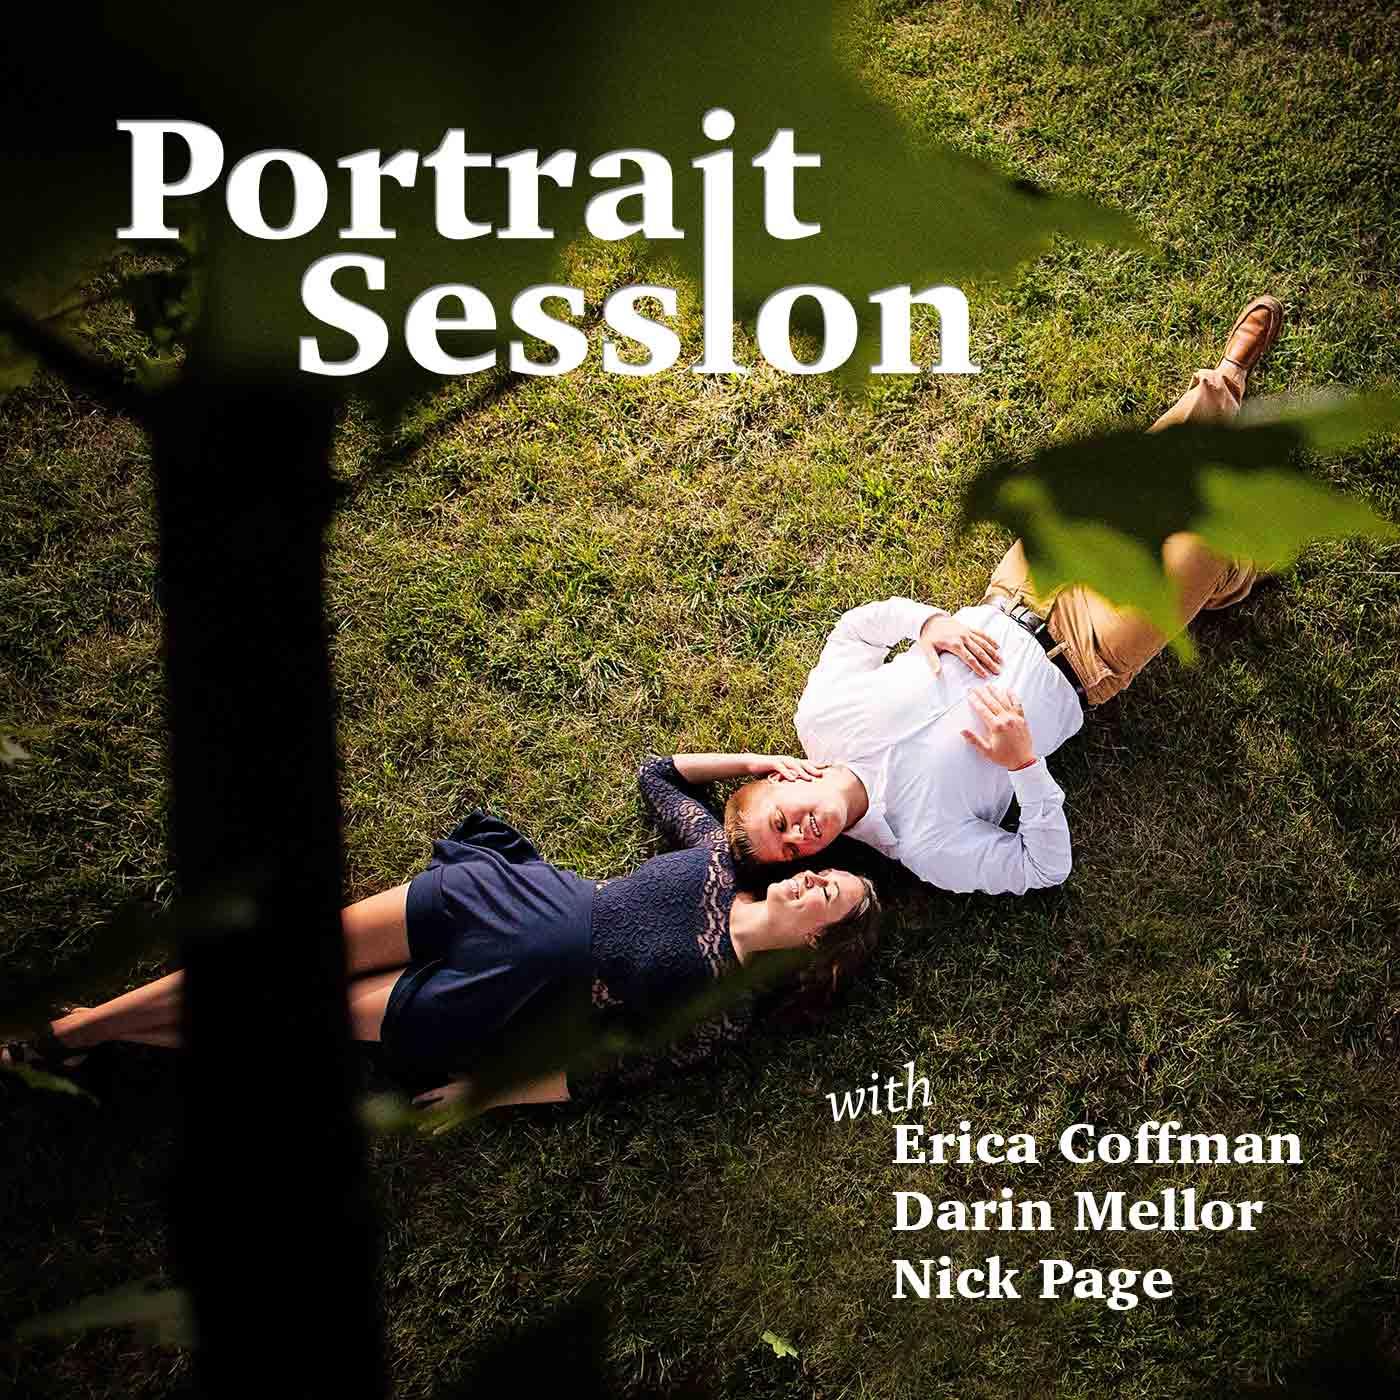 Portrait Session: The photography podcast for portrait photographers